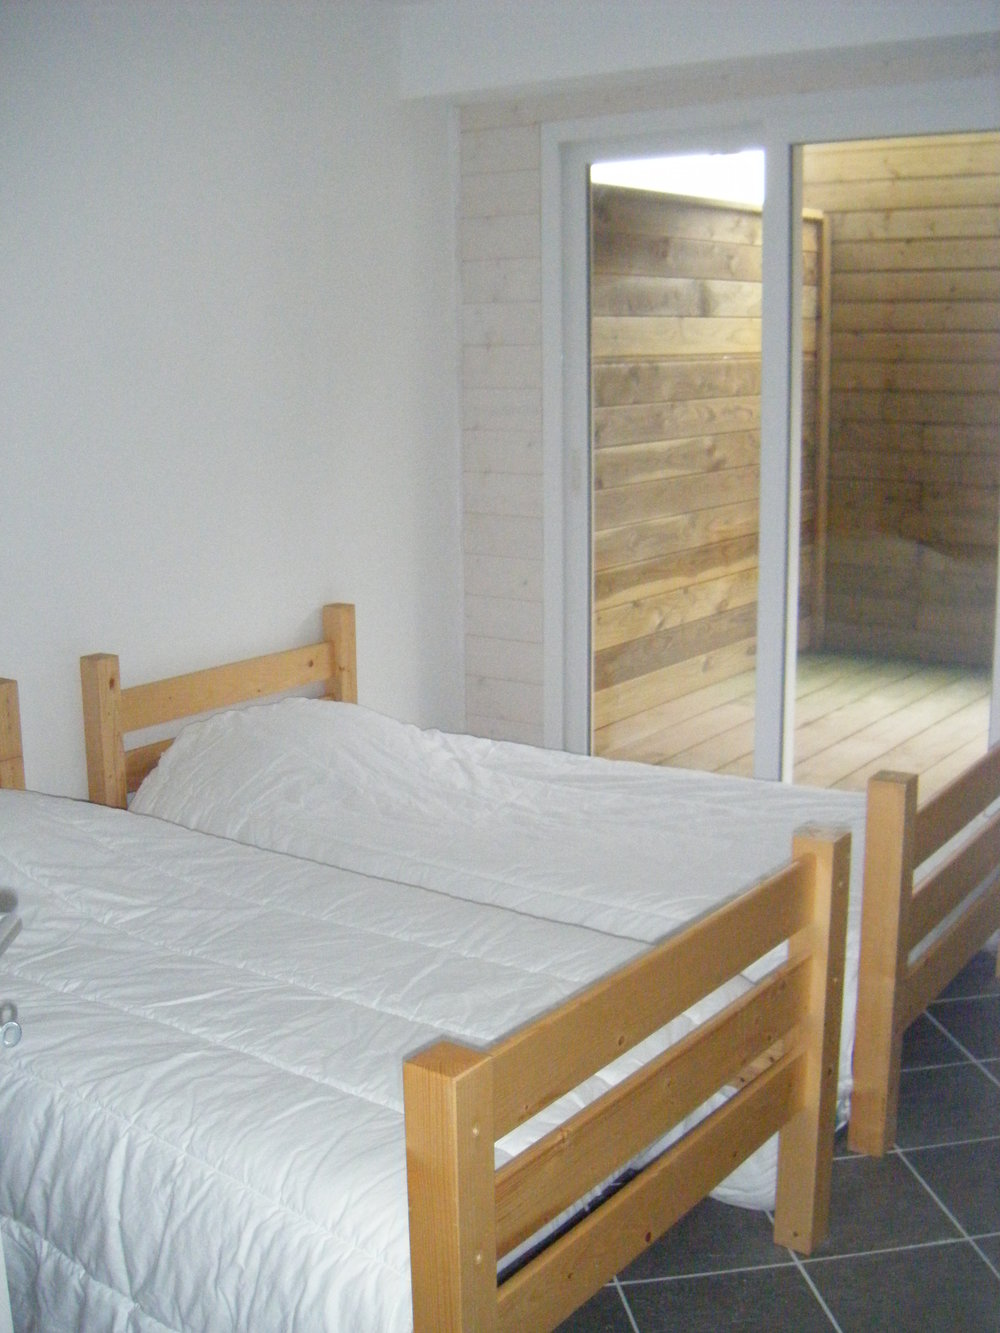 Biarritz Surf Camp, 3 rooms flat - beds